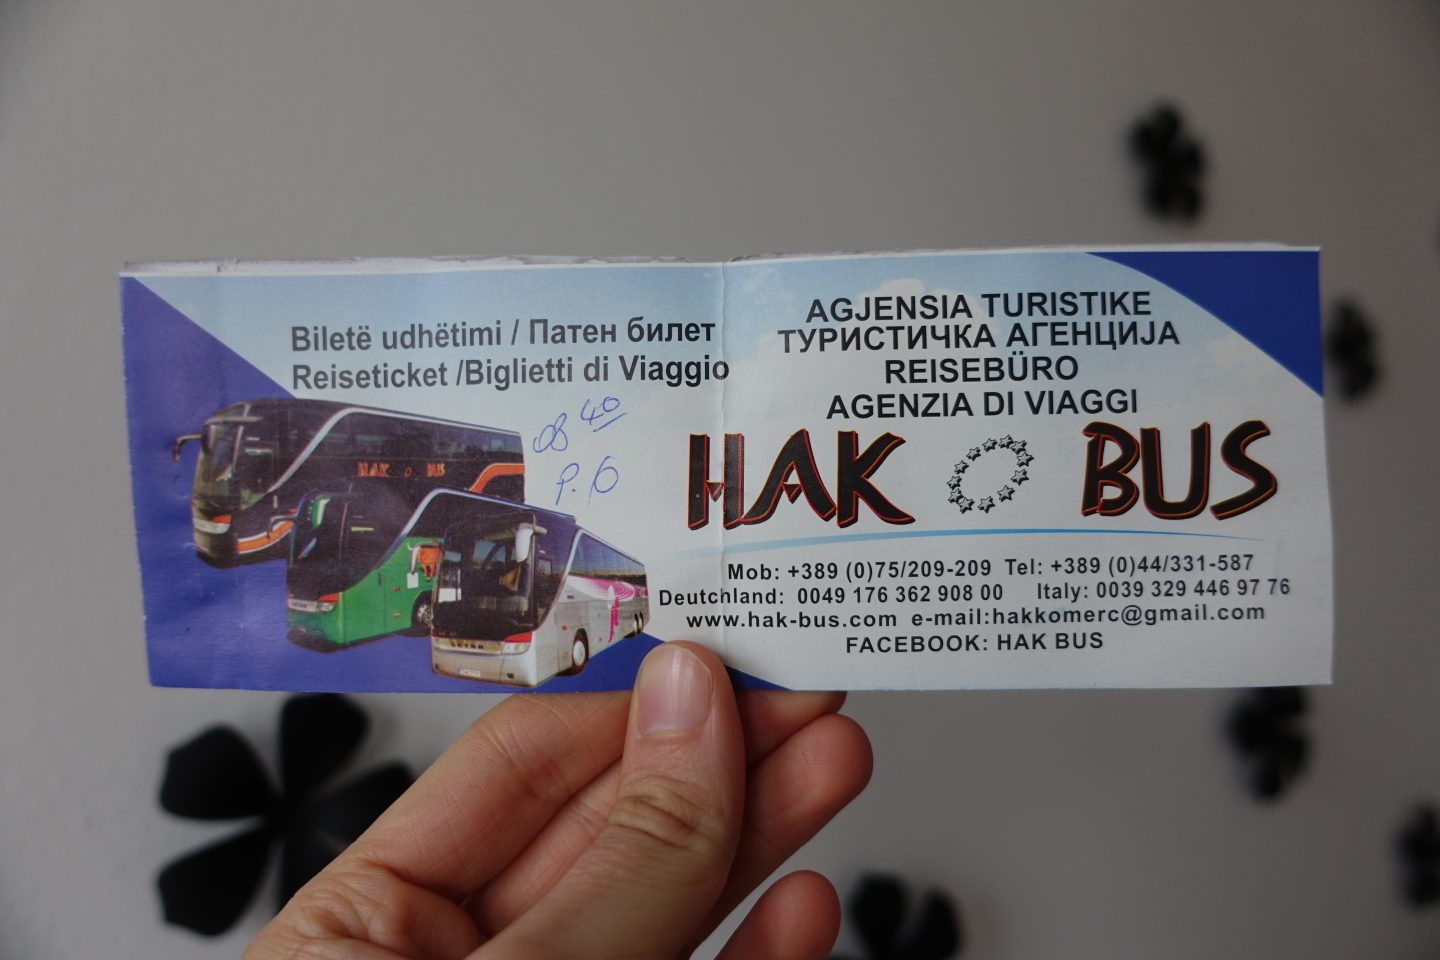 hak bus ticket to ohrid